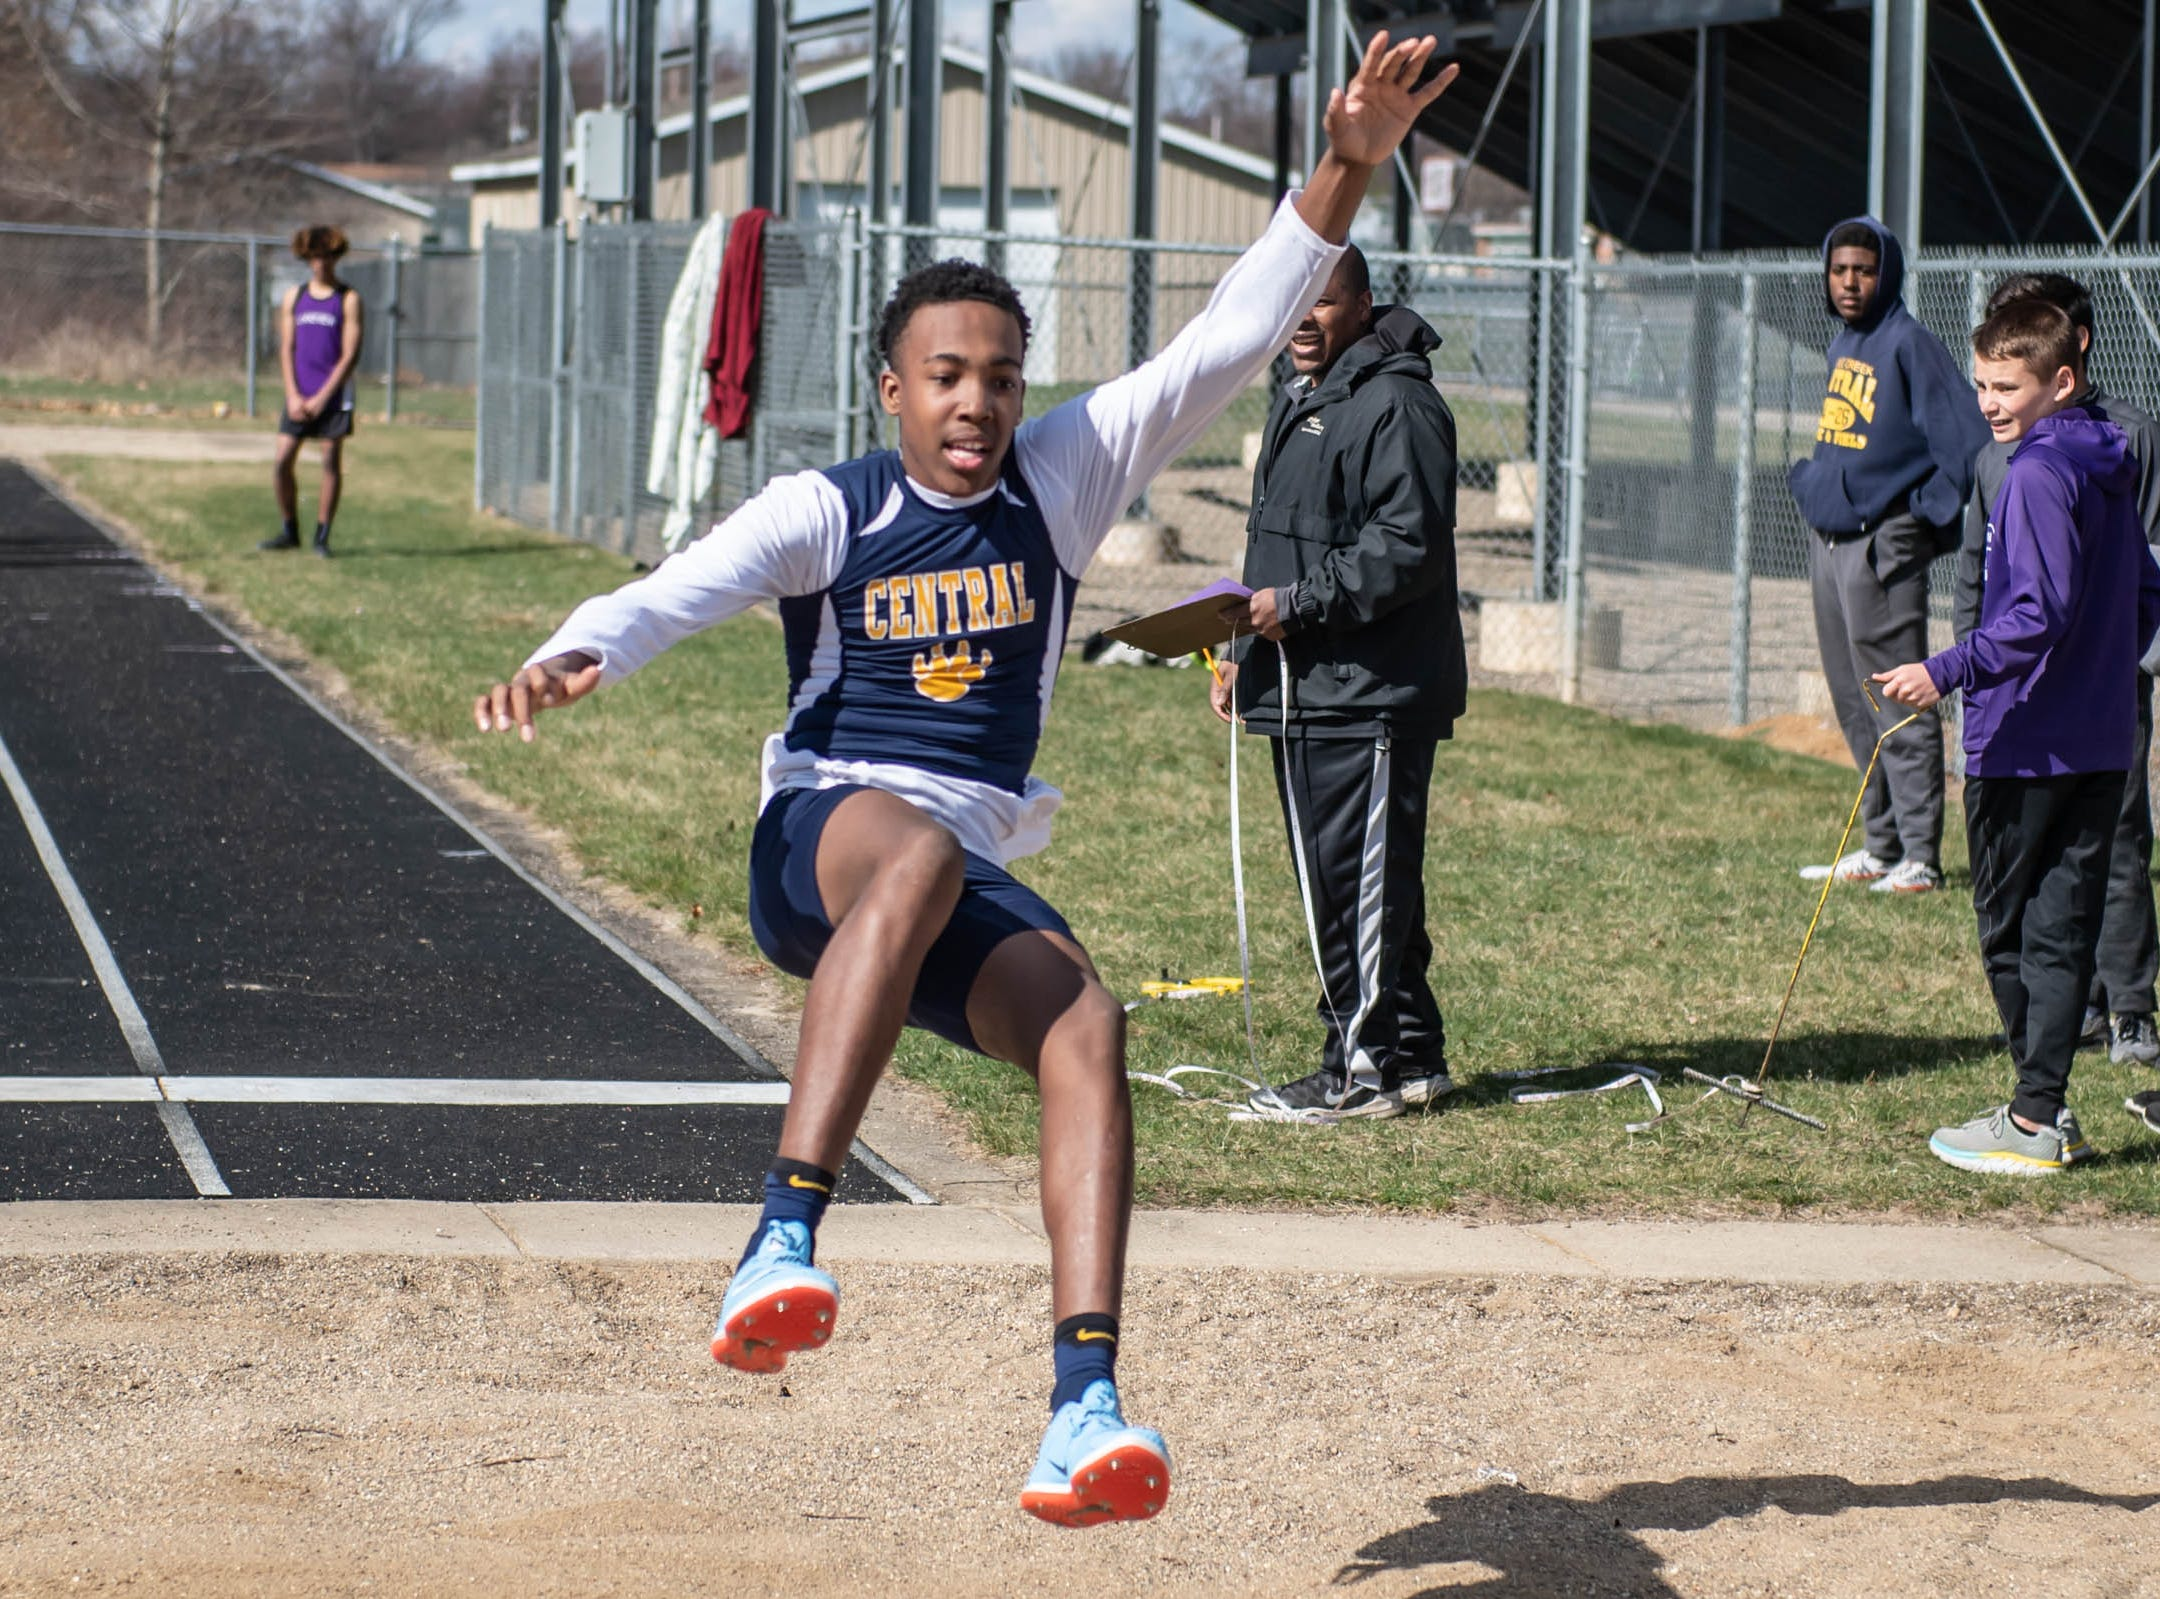 Battle Creek Central's Theo Shepherd competes in the long jump at Lakeview High School during a dual meet held on 4/9/19.